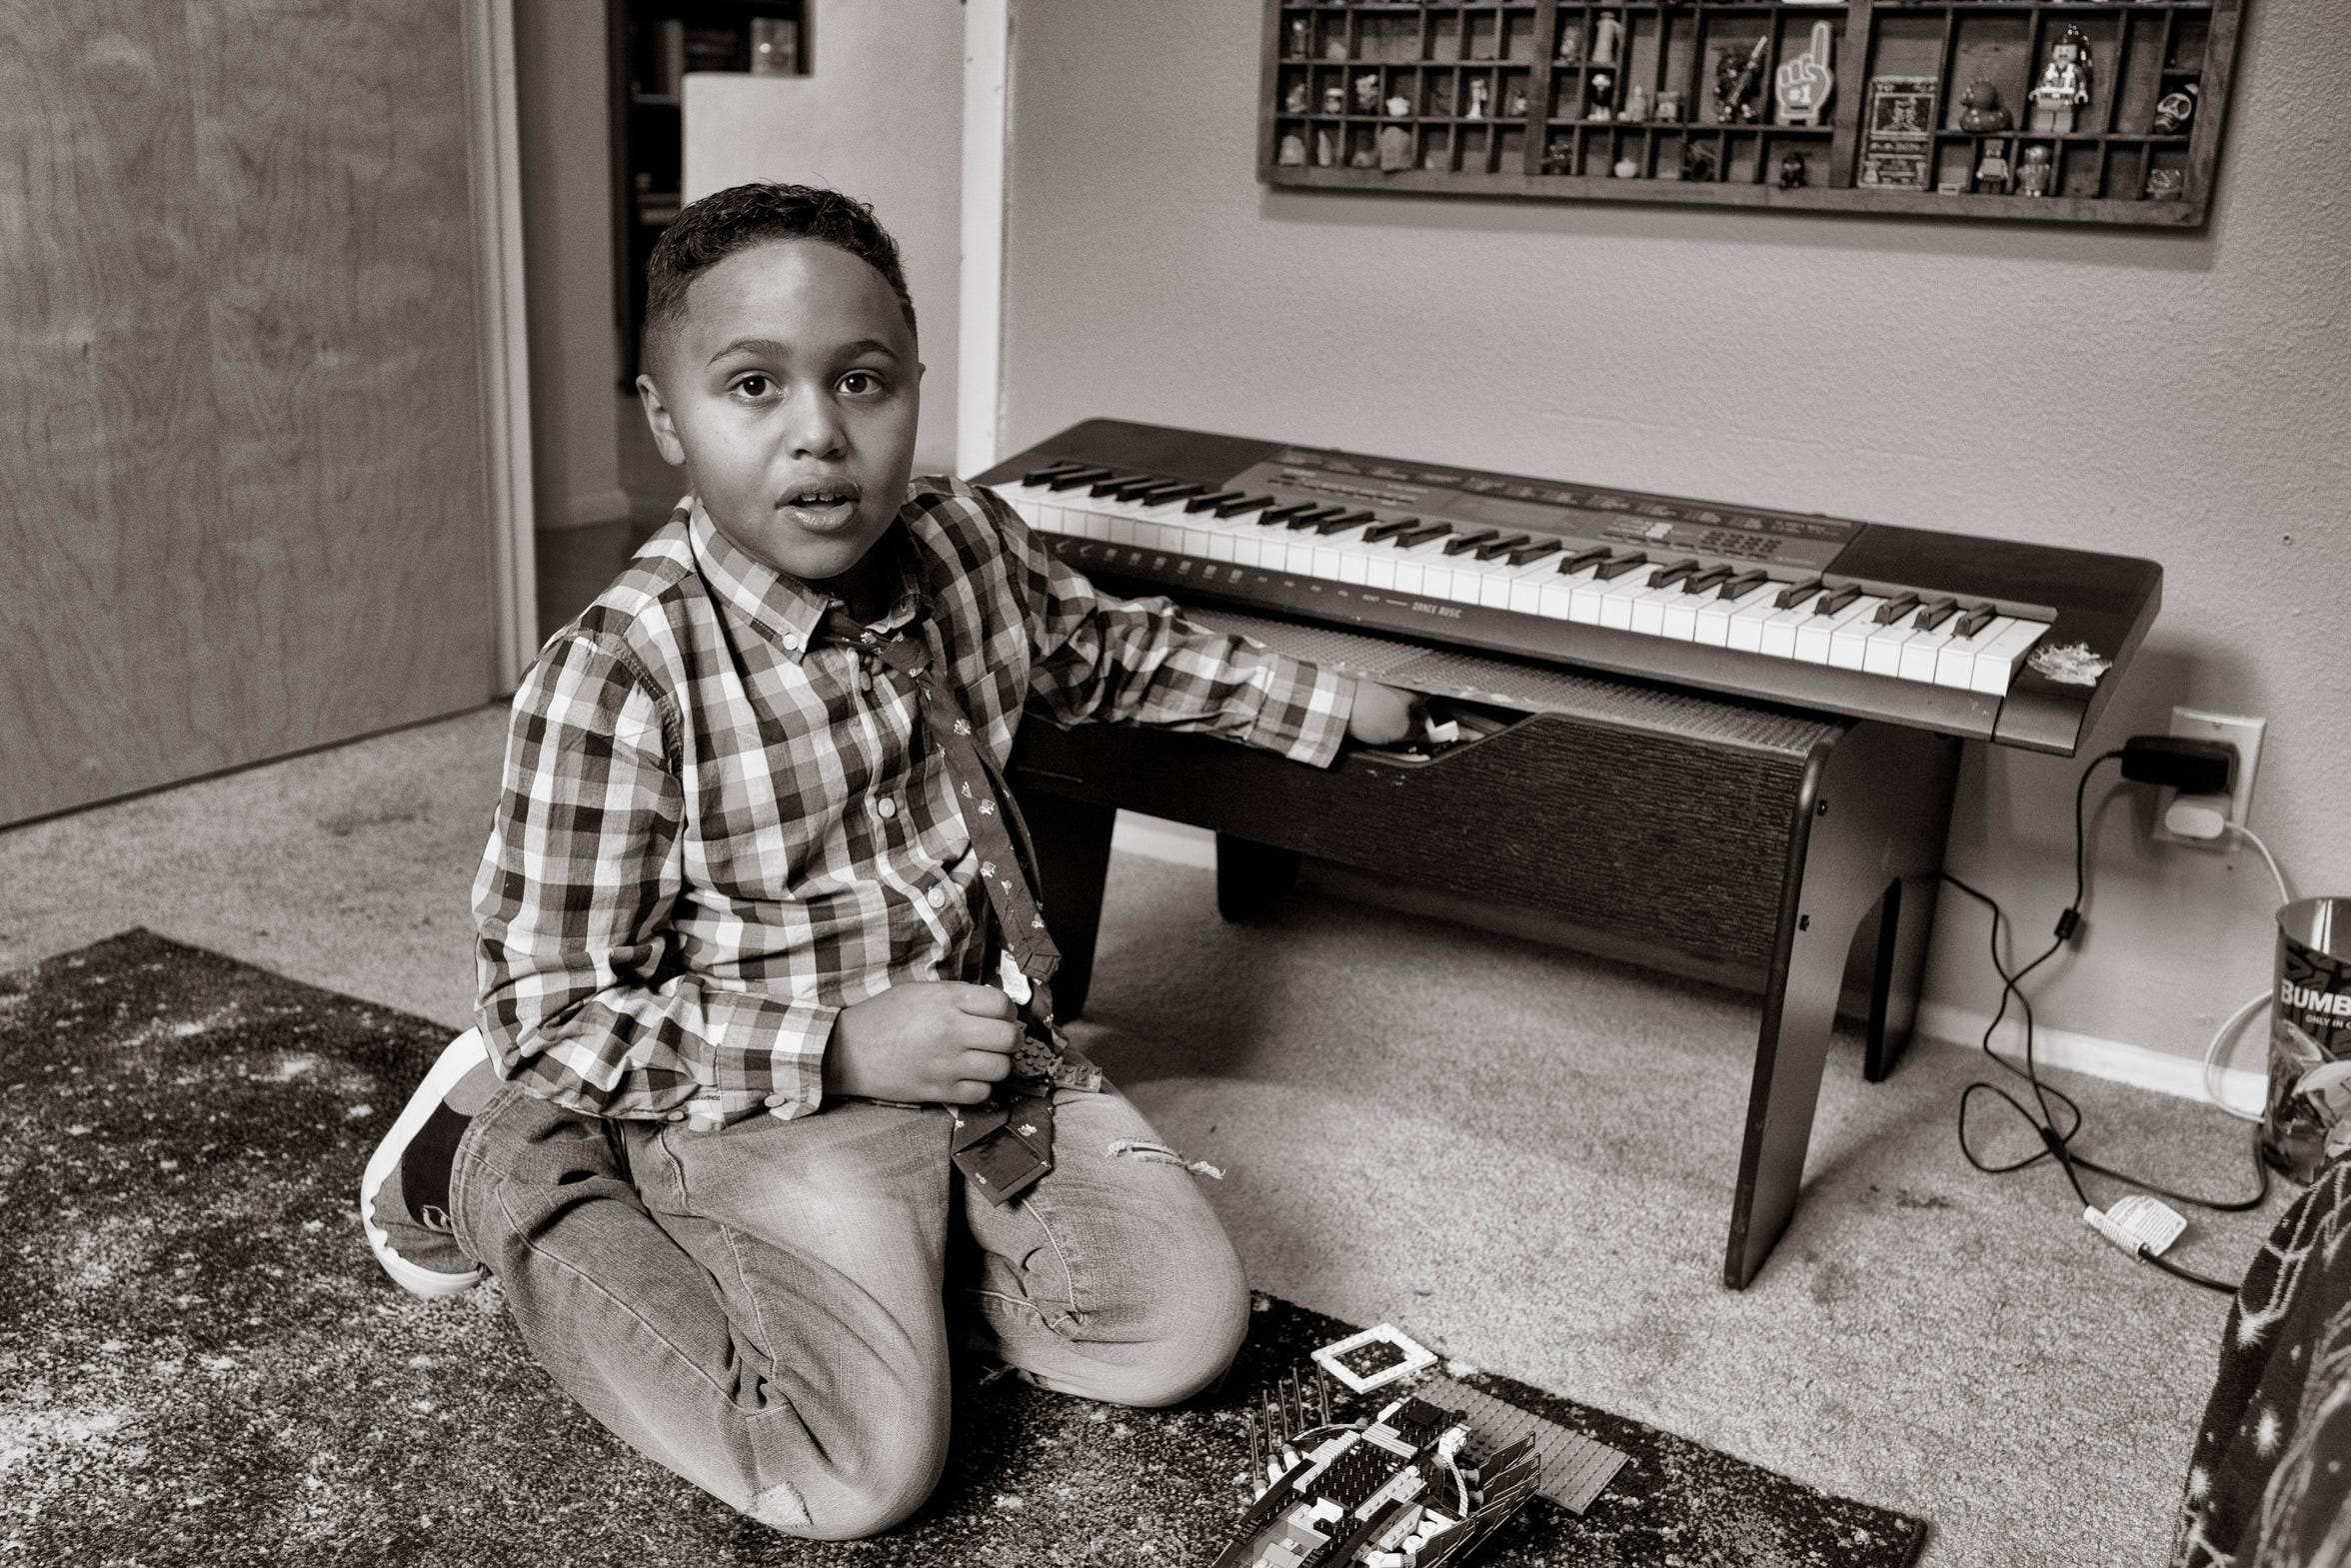 Jamari Nelson, 7,  displays part of his collection of Legos in his bedroom at home Albuquerque, New Mexico.